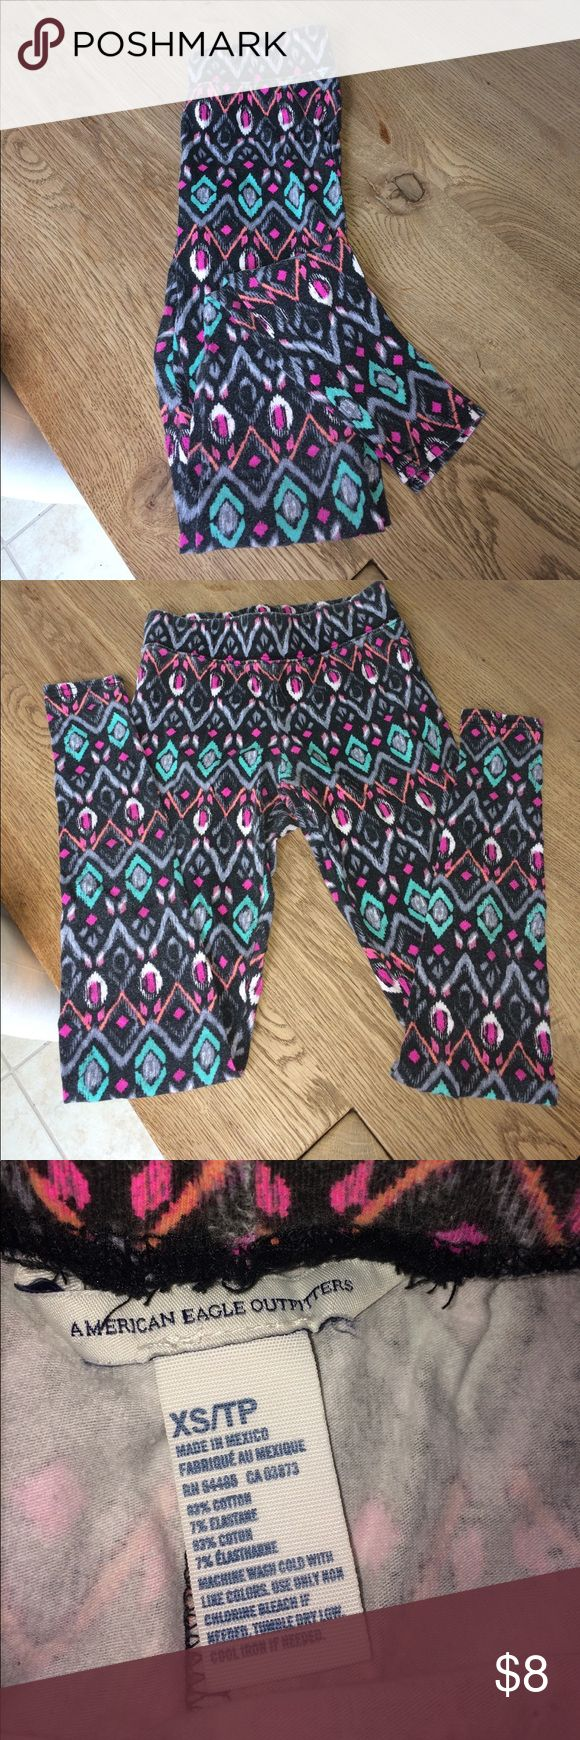 American Eagle Aztec Print Leggings Really good condition no rips or stains. I just don't wear them anymore and I'm trying to make some more room in my closet. American Eagle Outfitters Pants Leggings